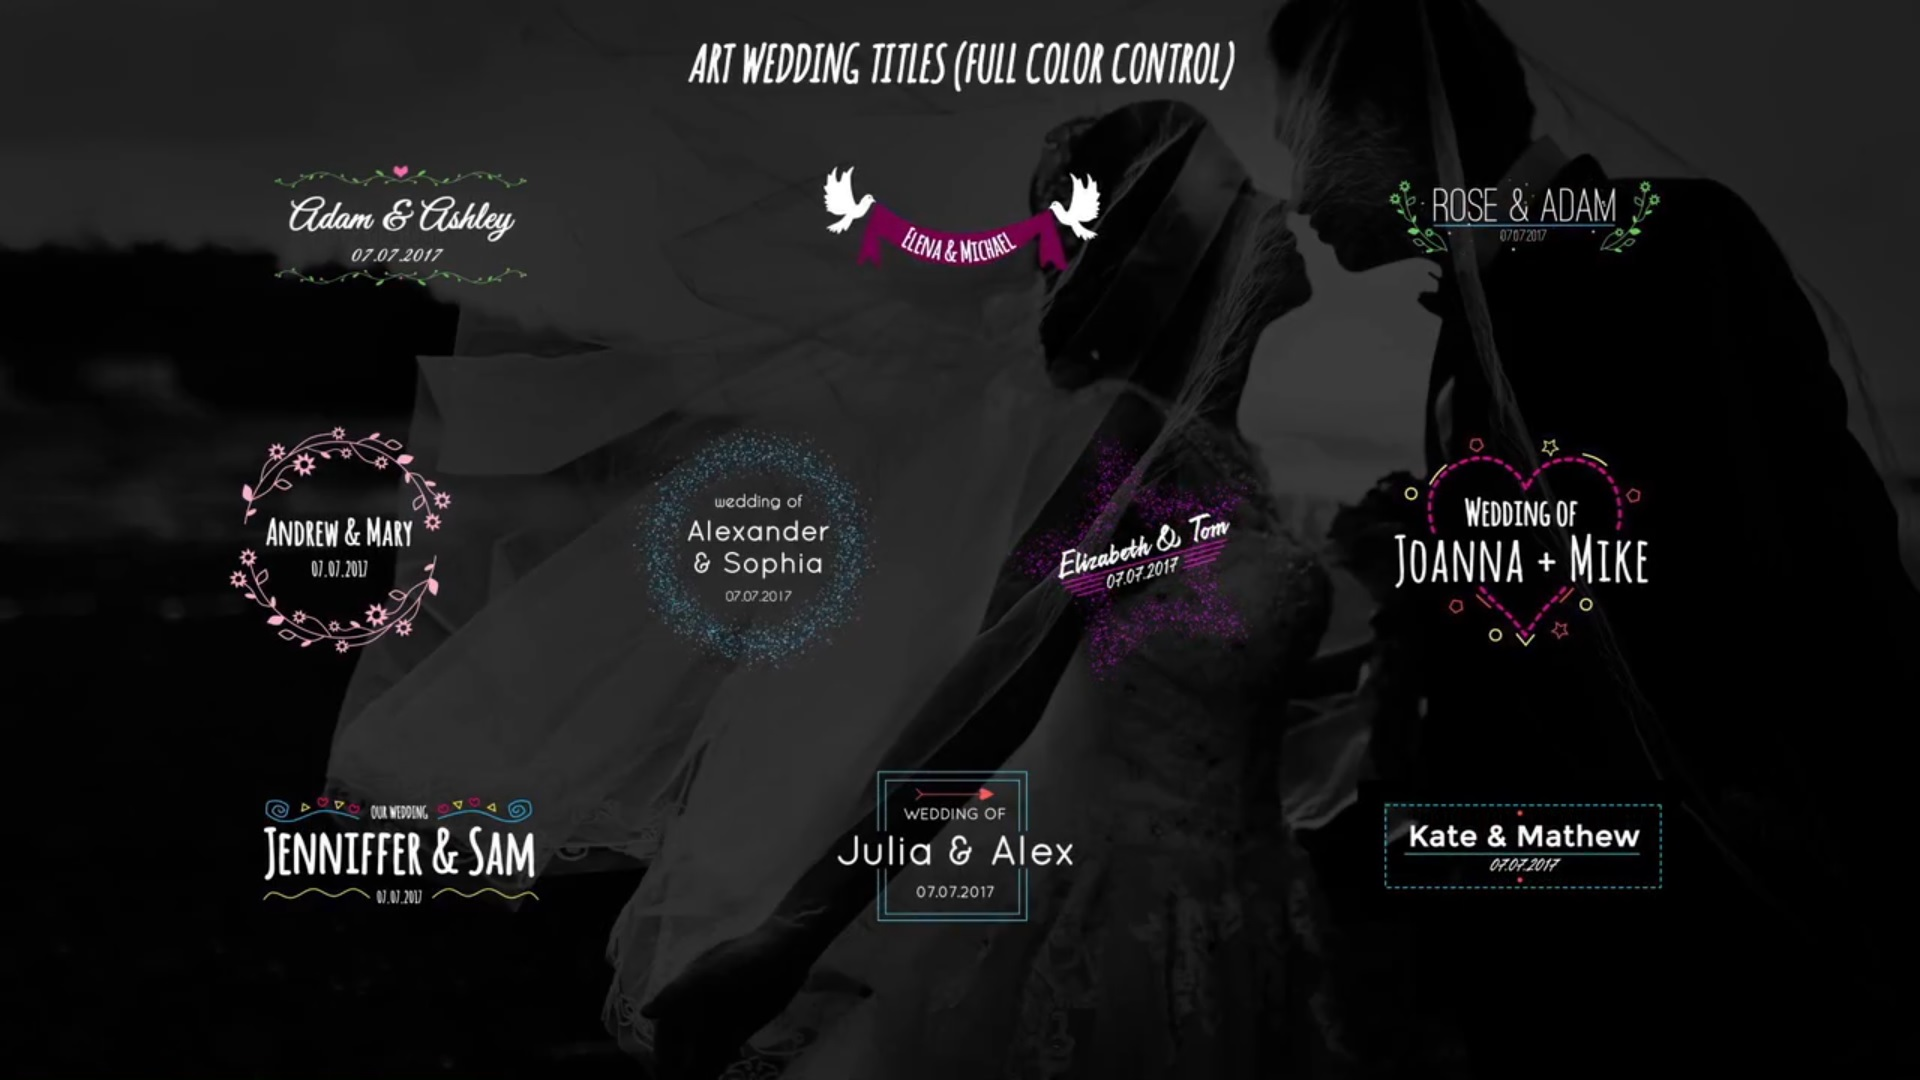 Art Wedding Titles (After Effects)